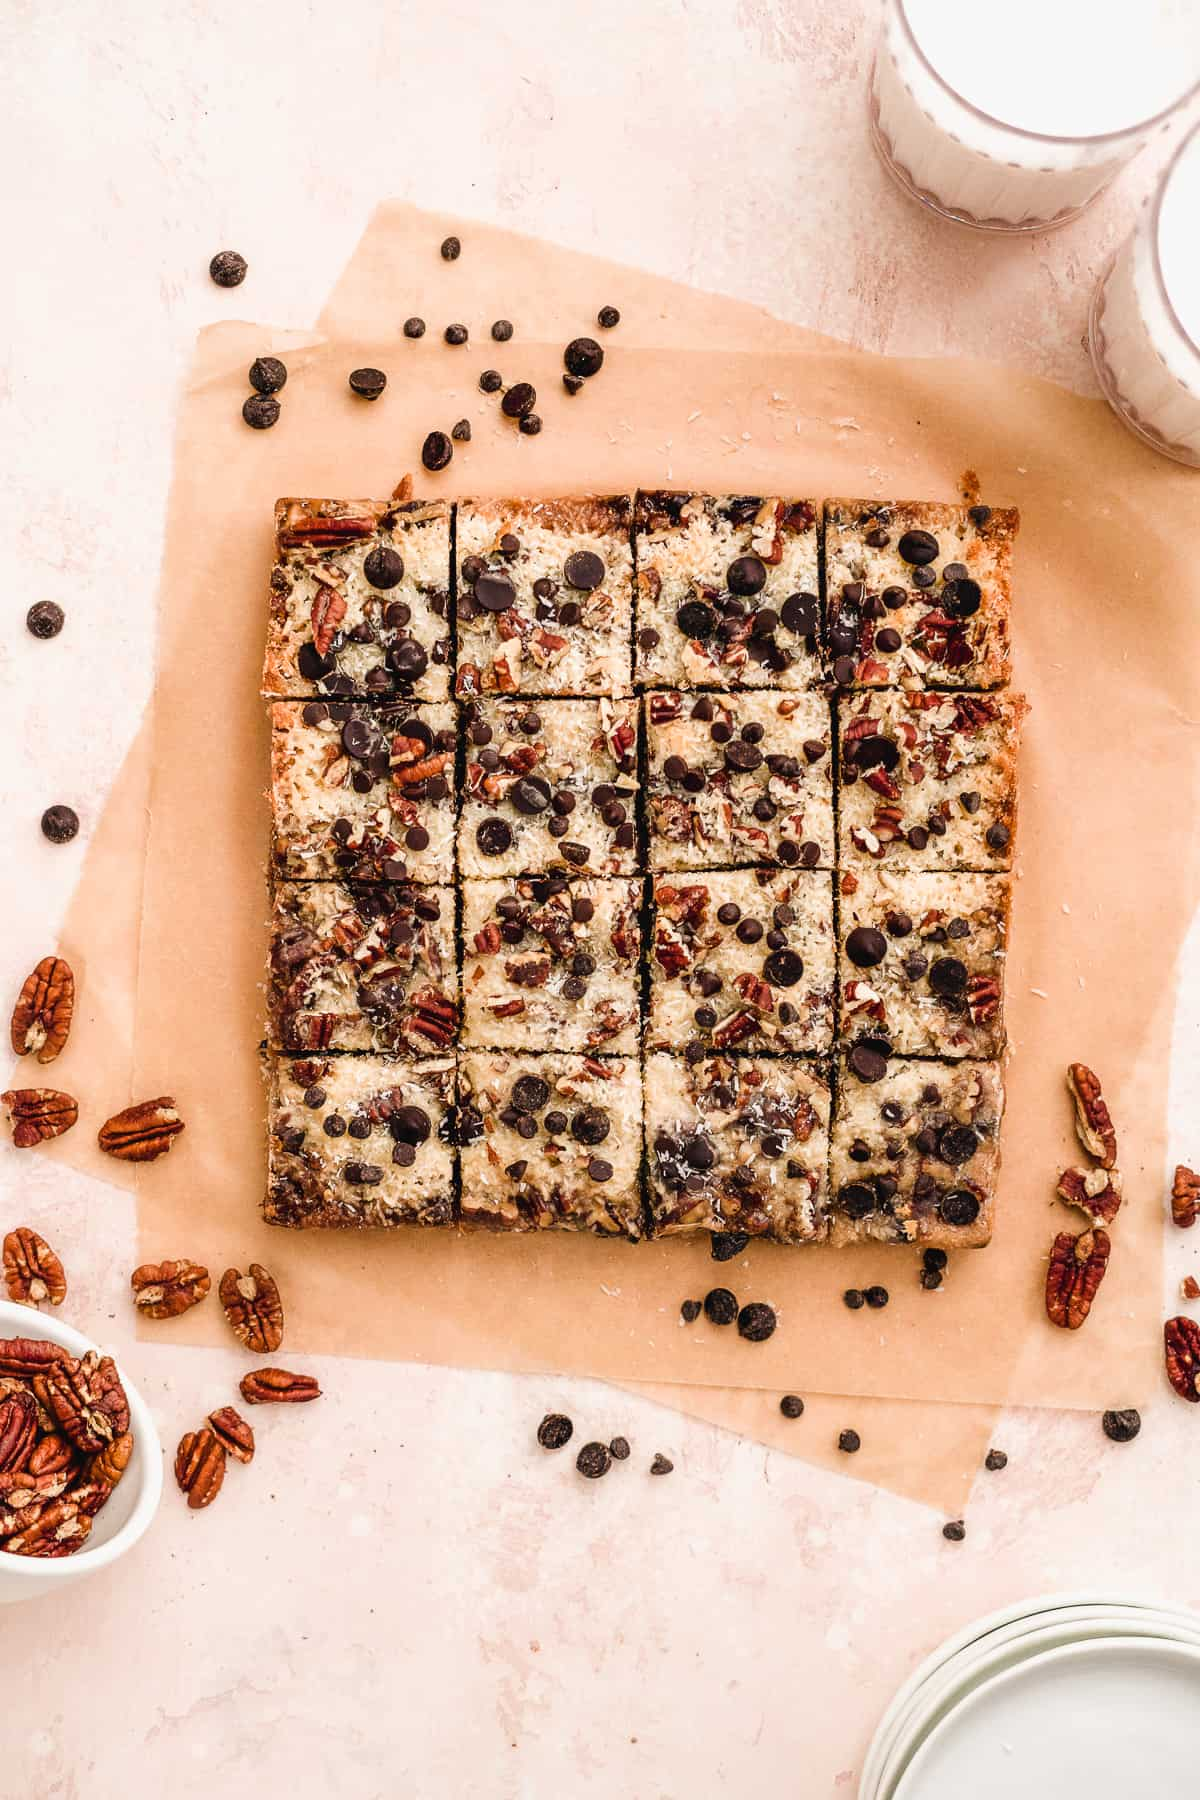 Overhead view of baked Toasted Oat Seven Layer Magic Cookie Bars on parchment paper cut into 16 squares and ready to be enjoyed.  Whole pecans and chocolate chips are sprinkled around.